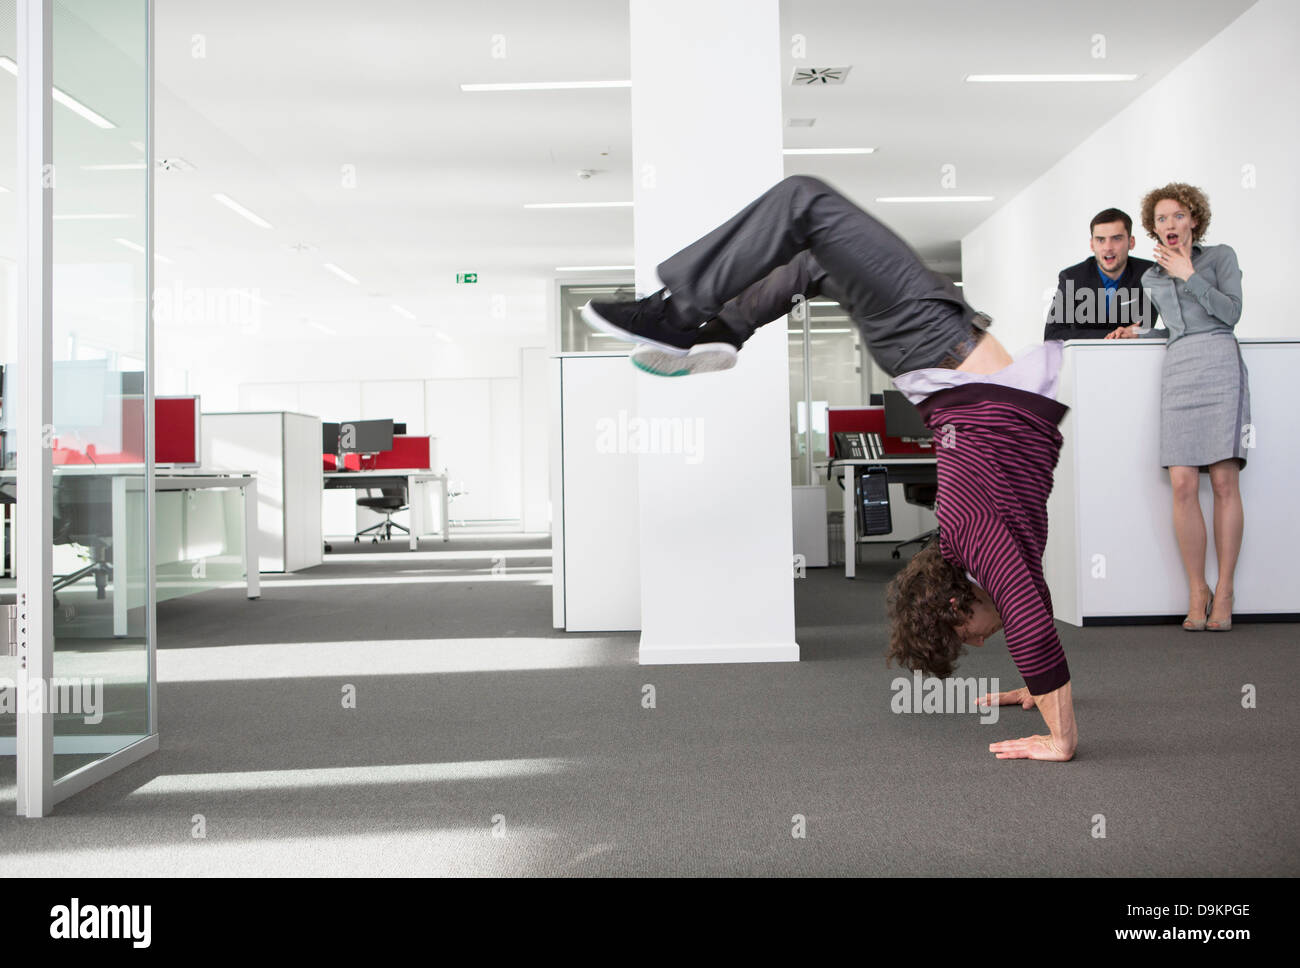 Office worker doing handstand, colleagues watching in shock - Stock Image